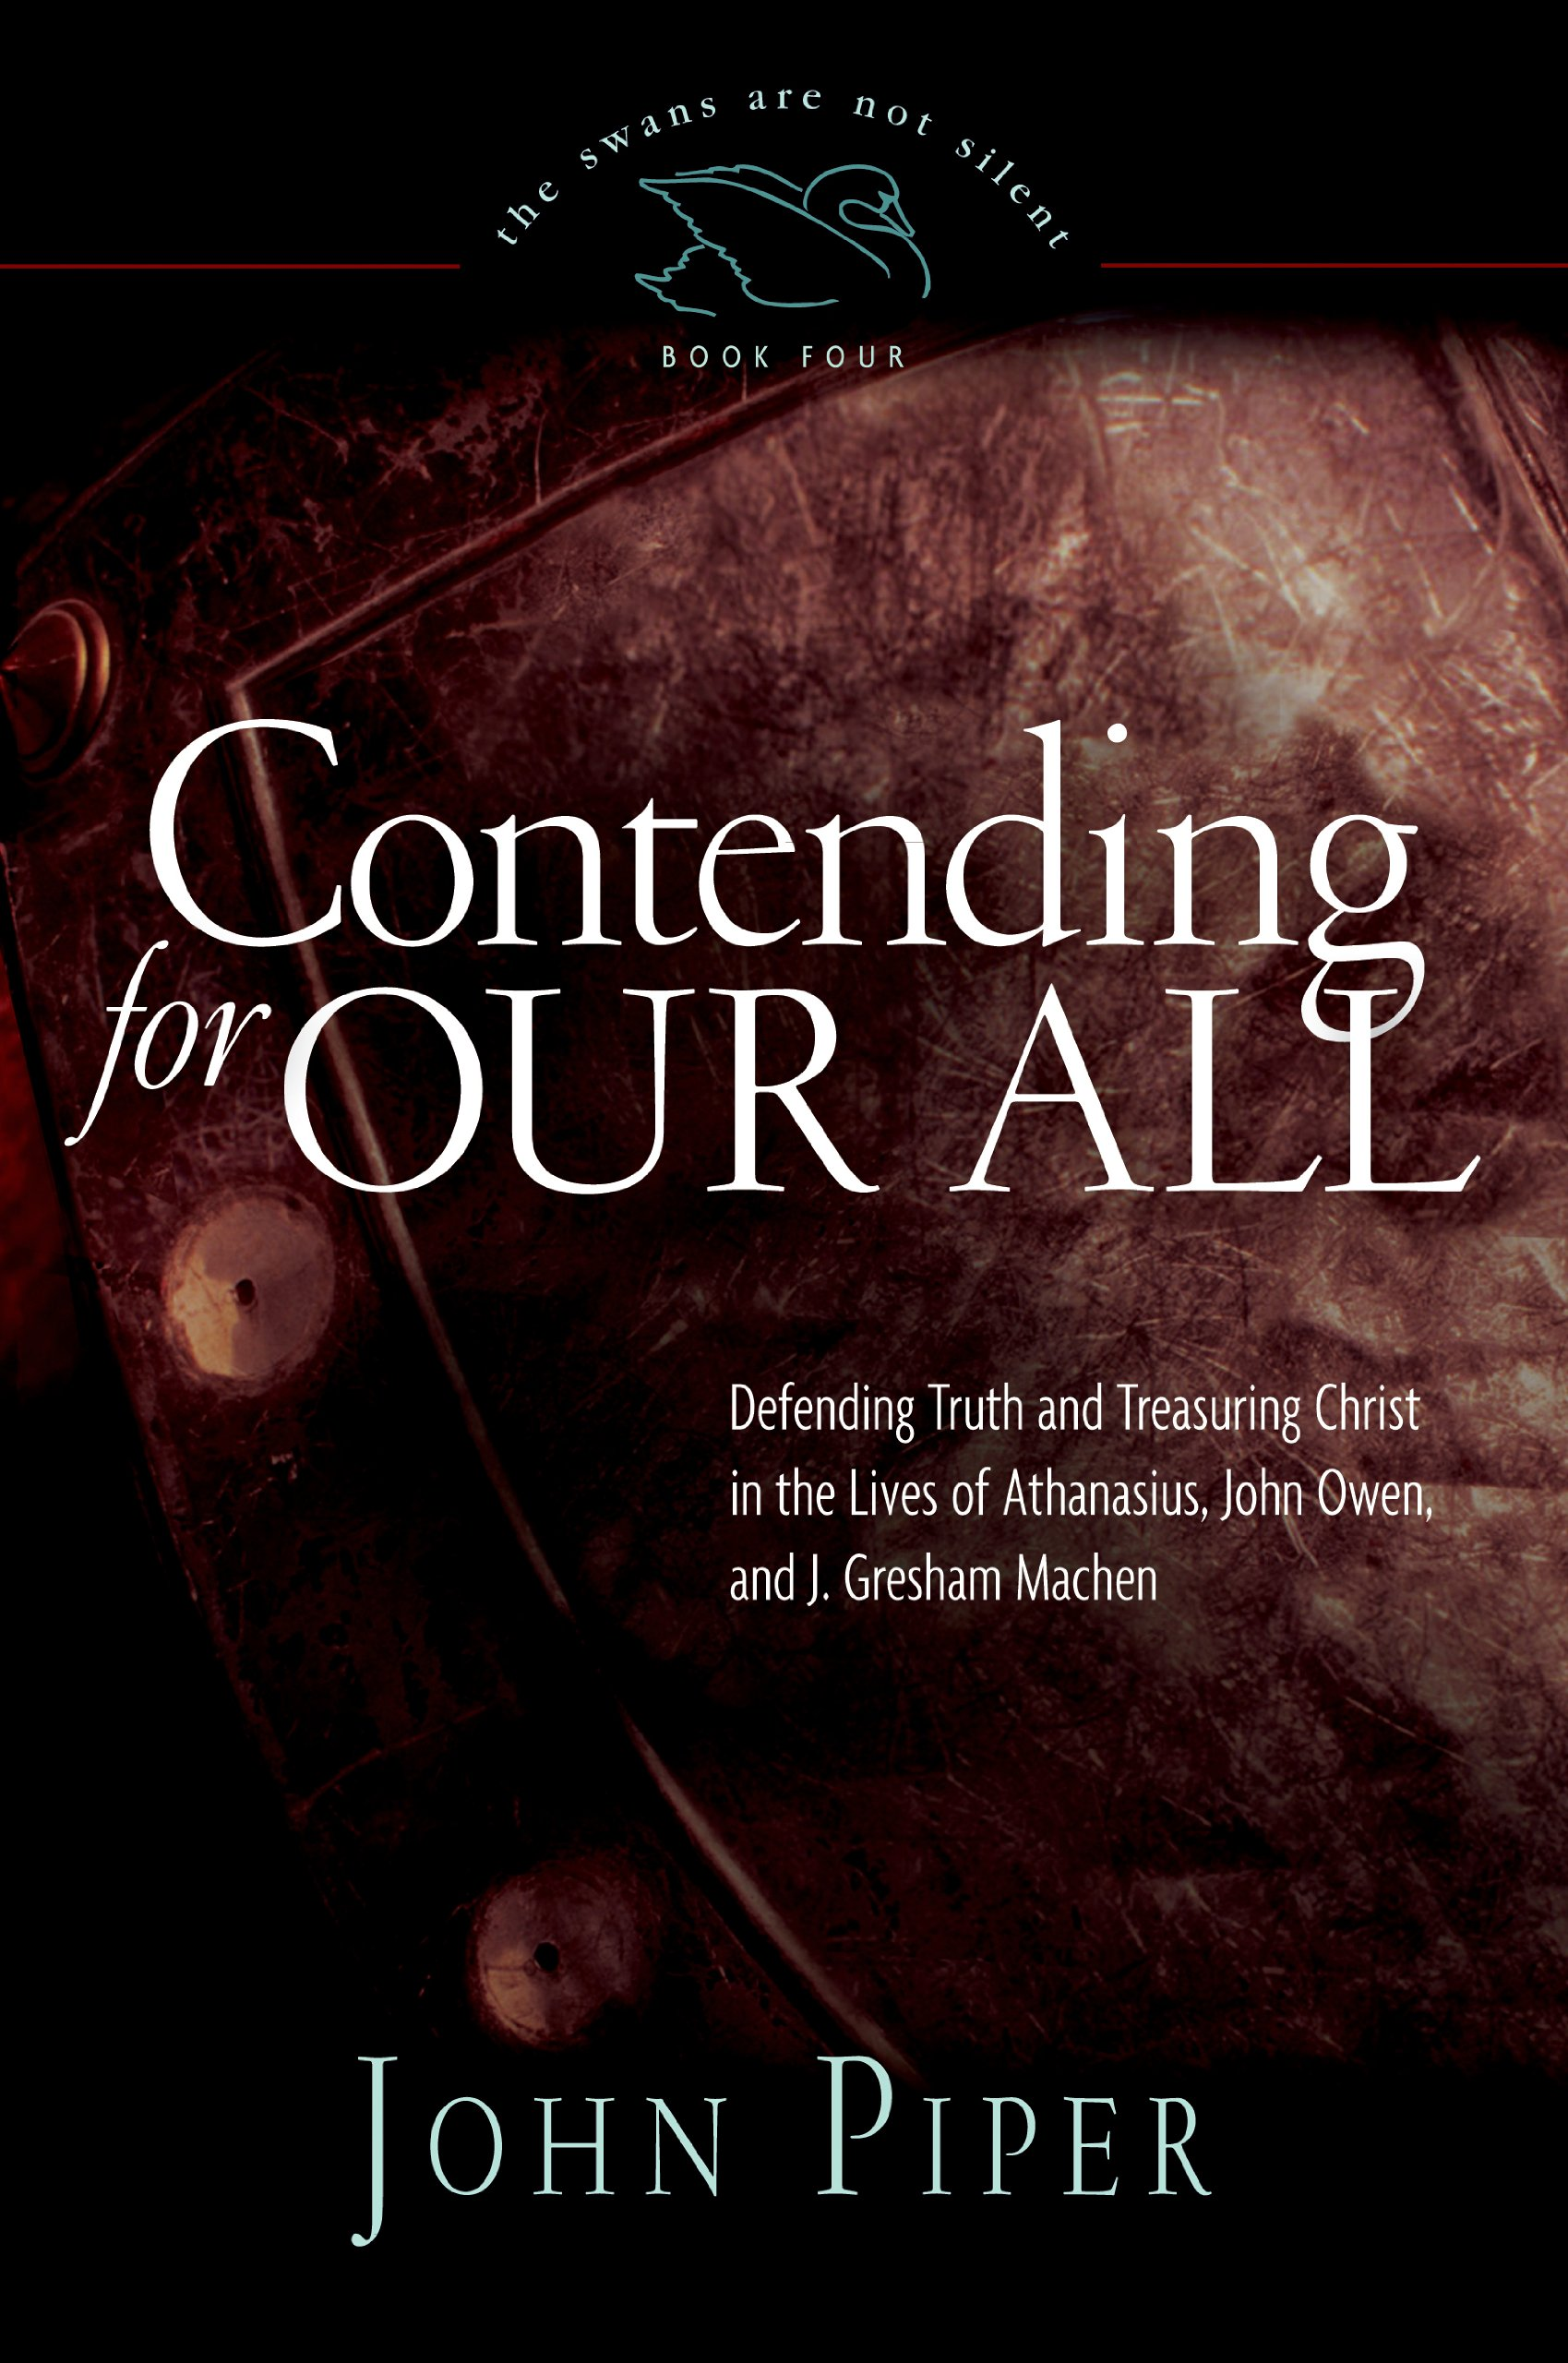 Read Online Contending for Our All: Defending Truth and Treasuring Christ in the Lives of Athanasius, John Owen, and J. Gresham Machen ebook